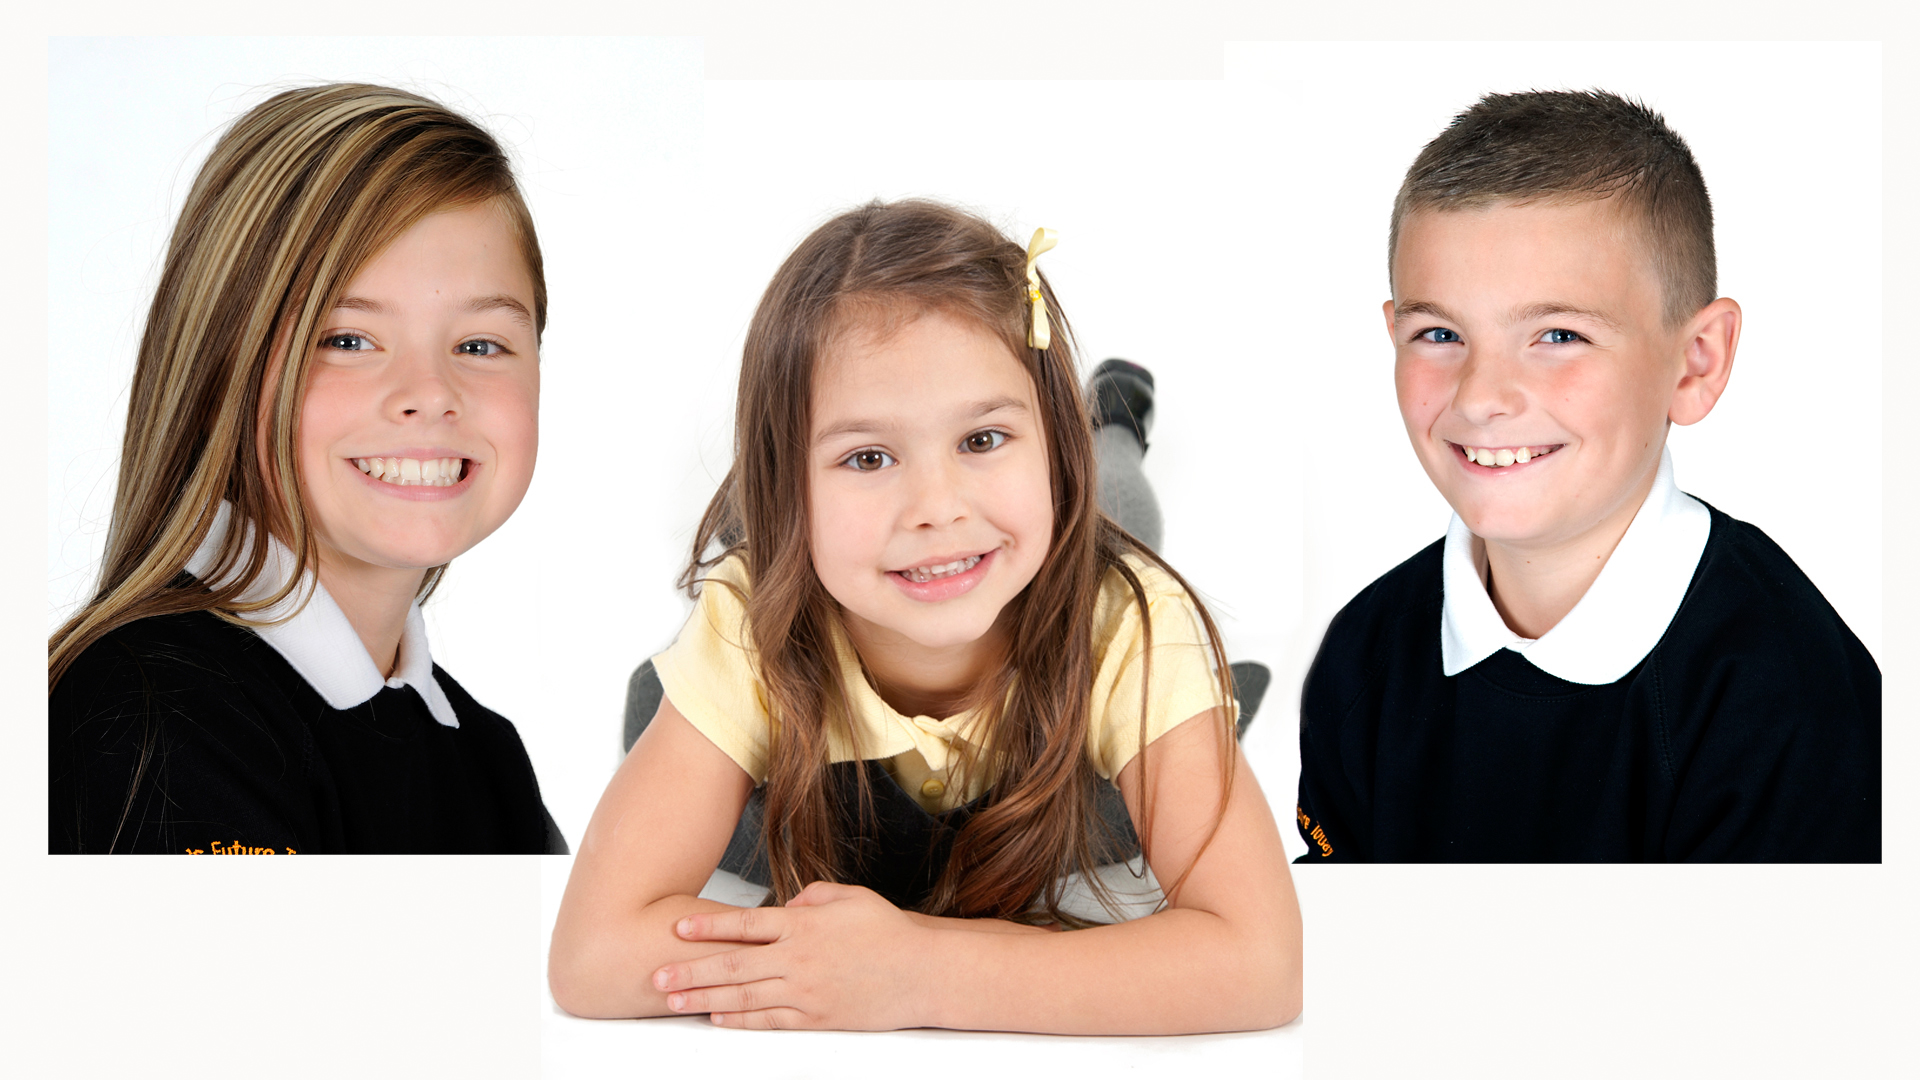 School Photographer in Kent